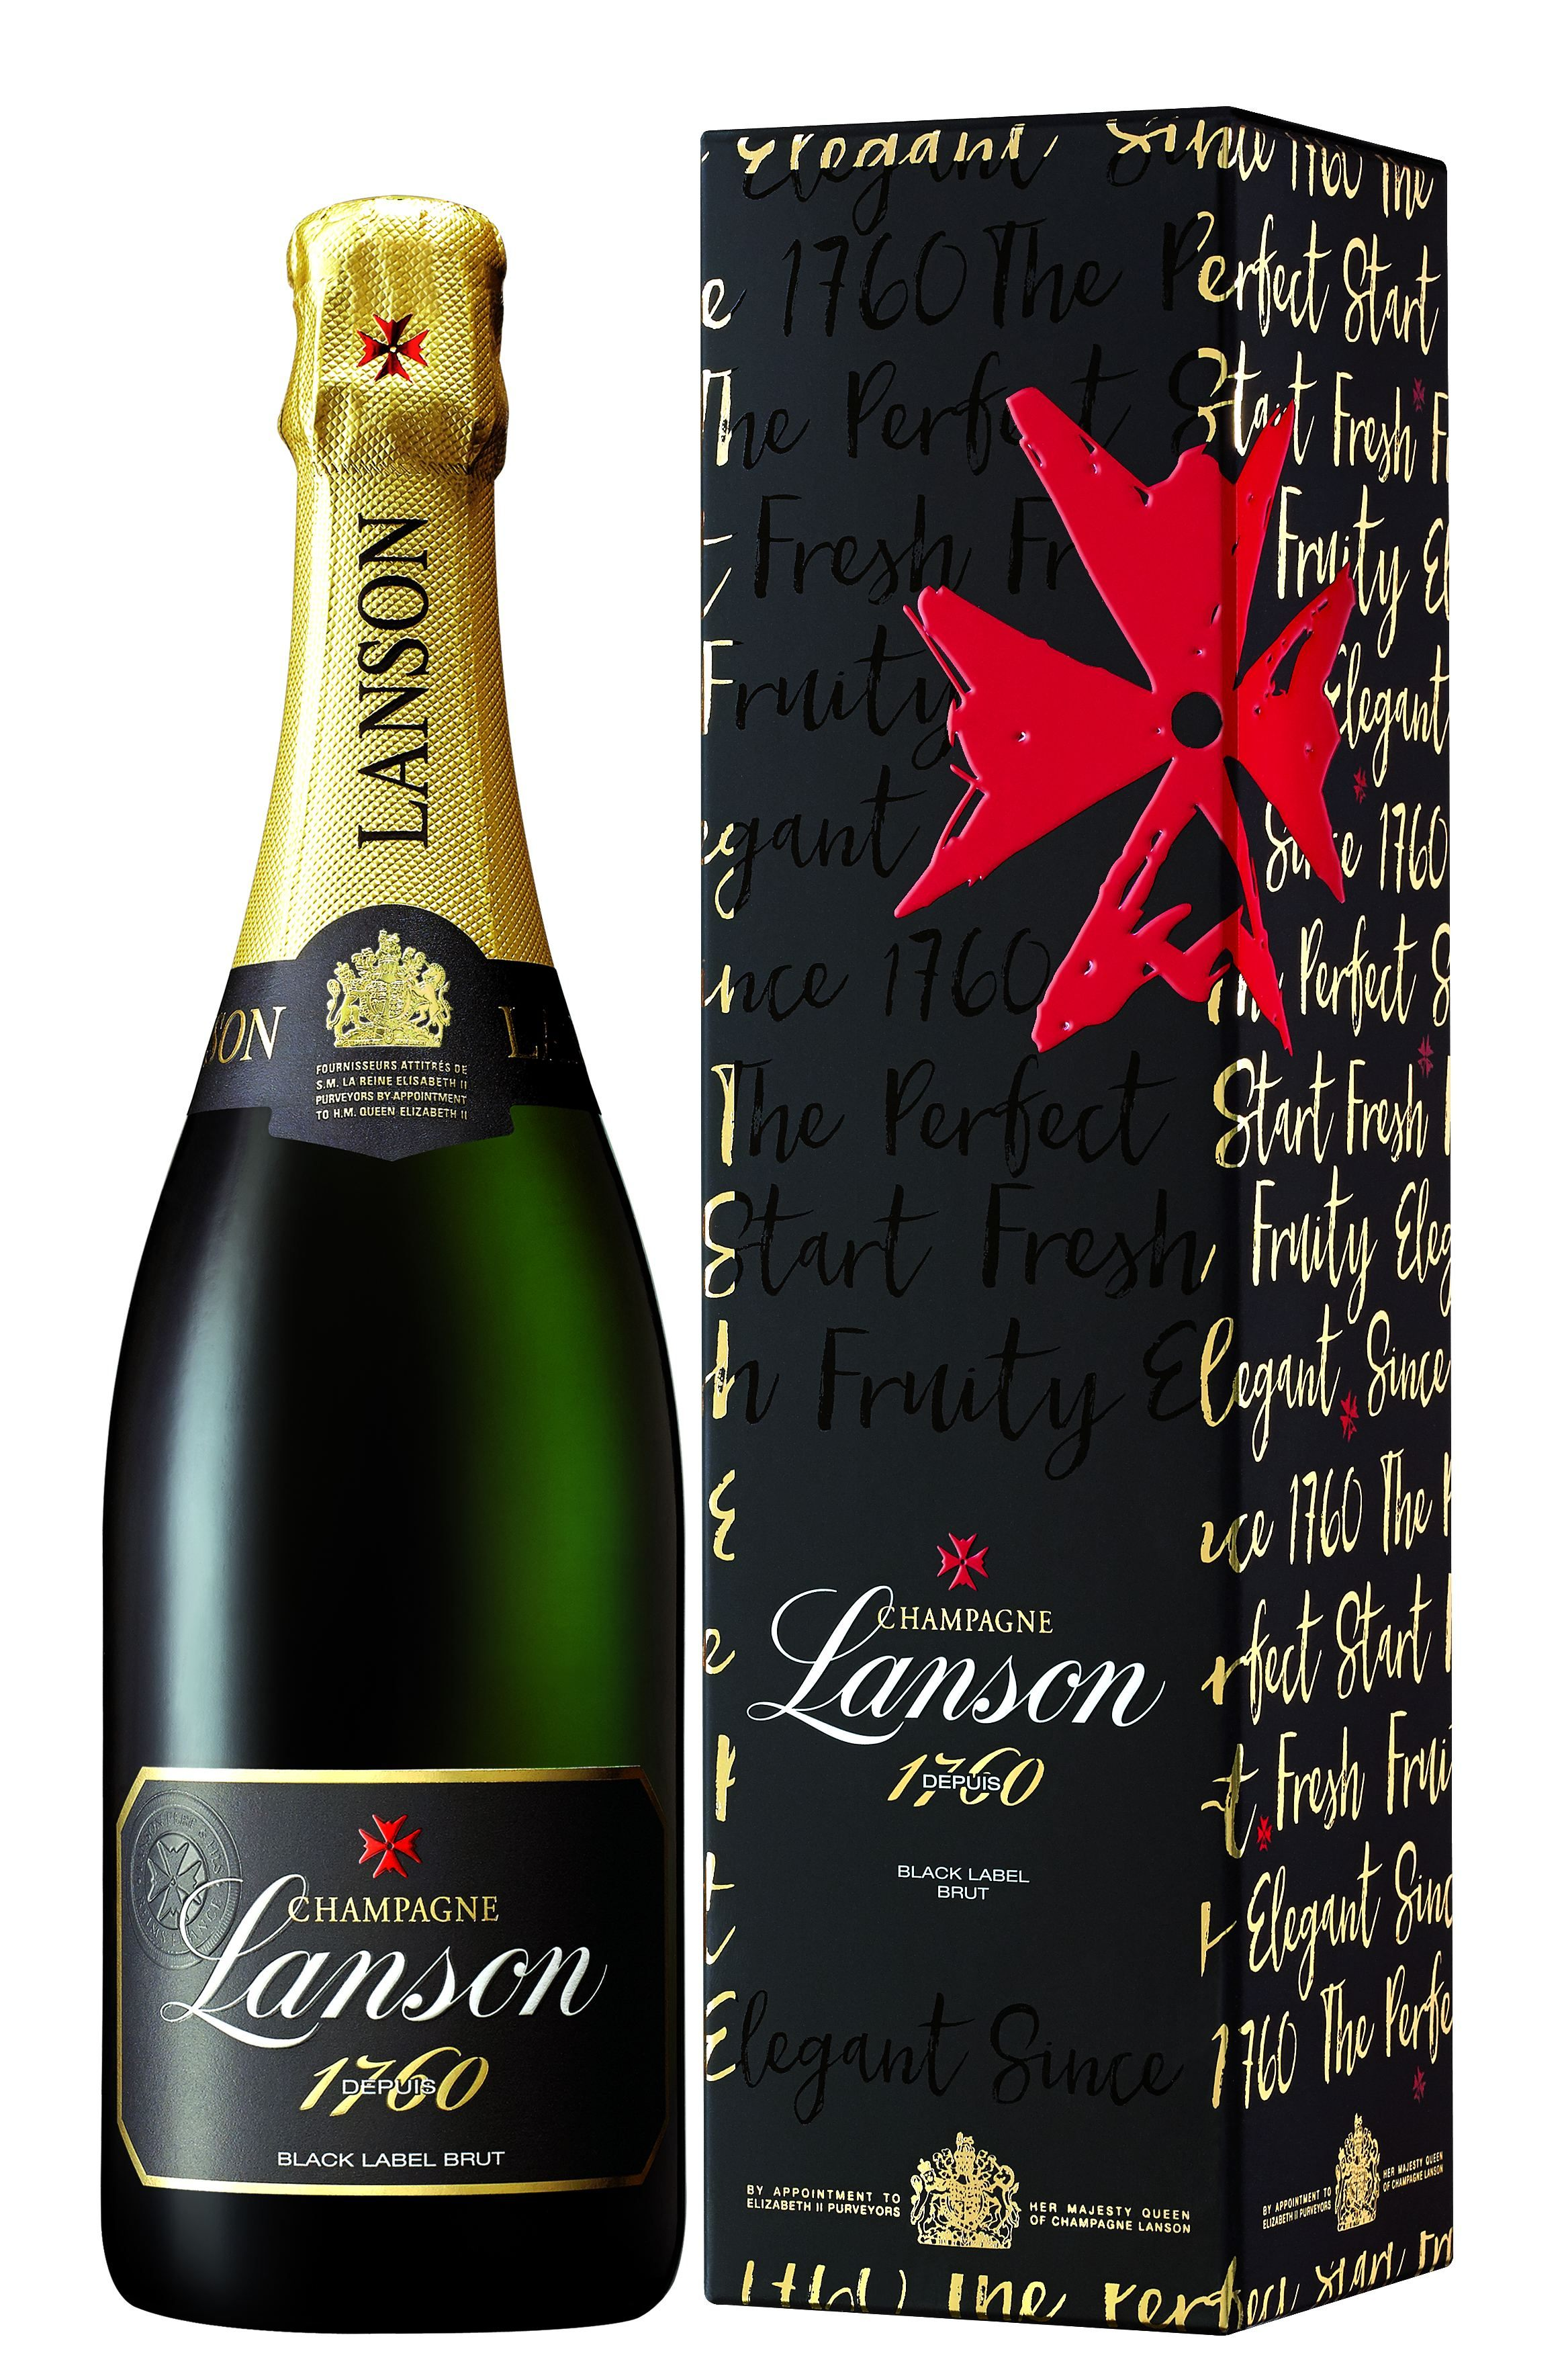 Lanson Black Label Champagner